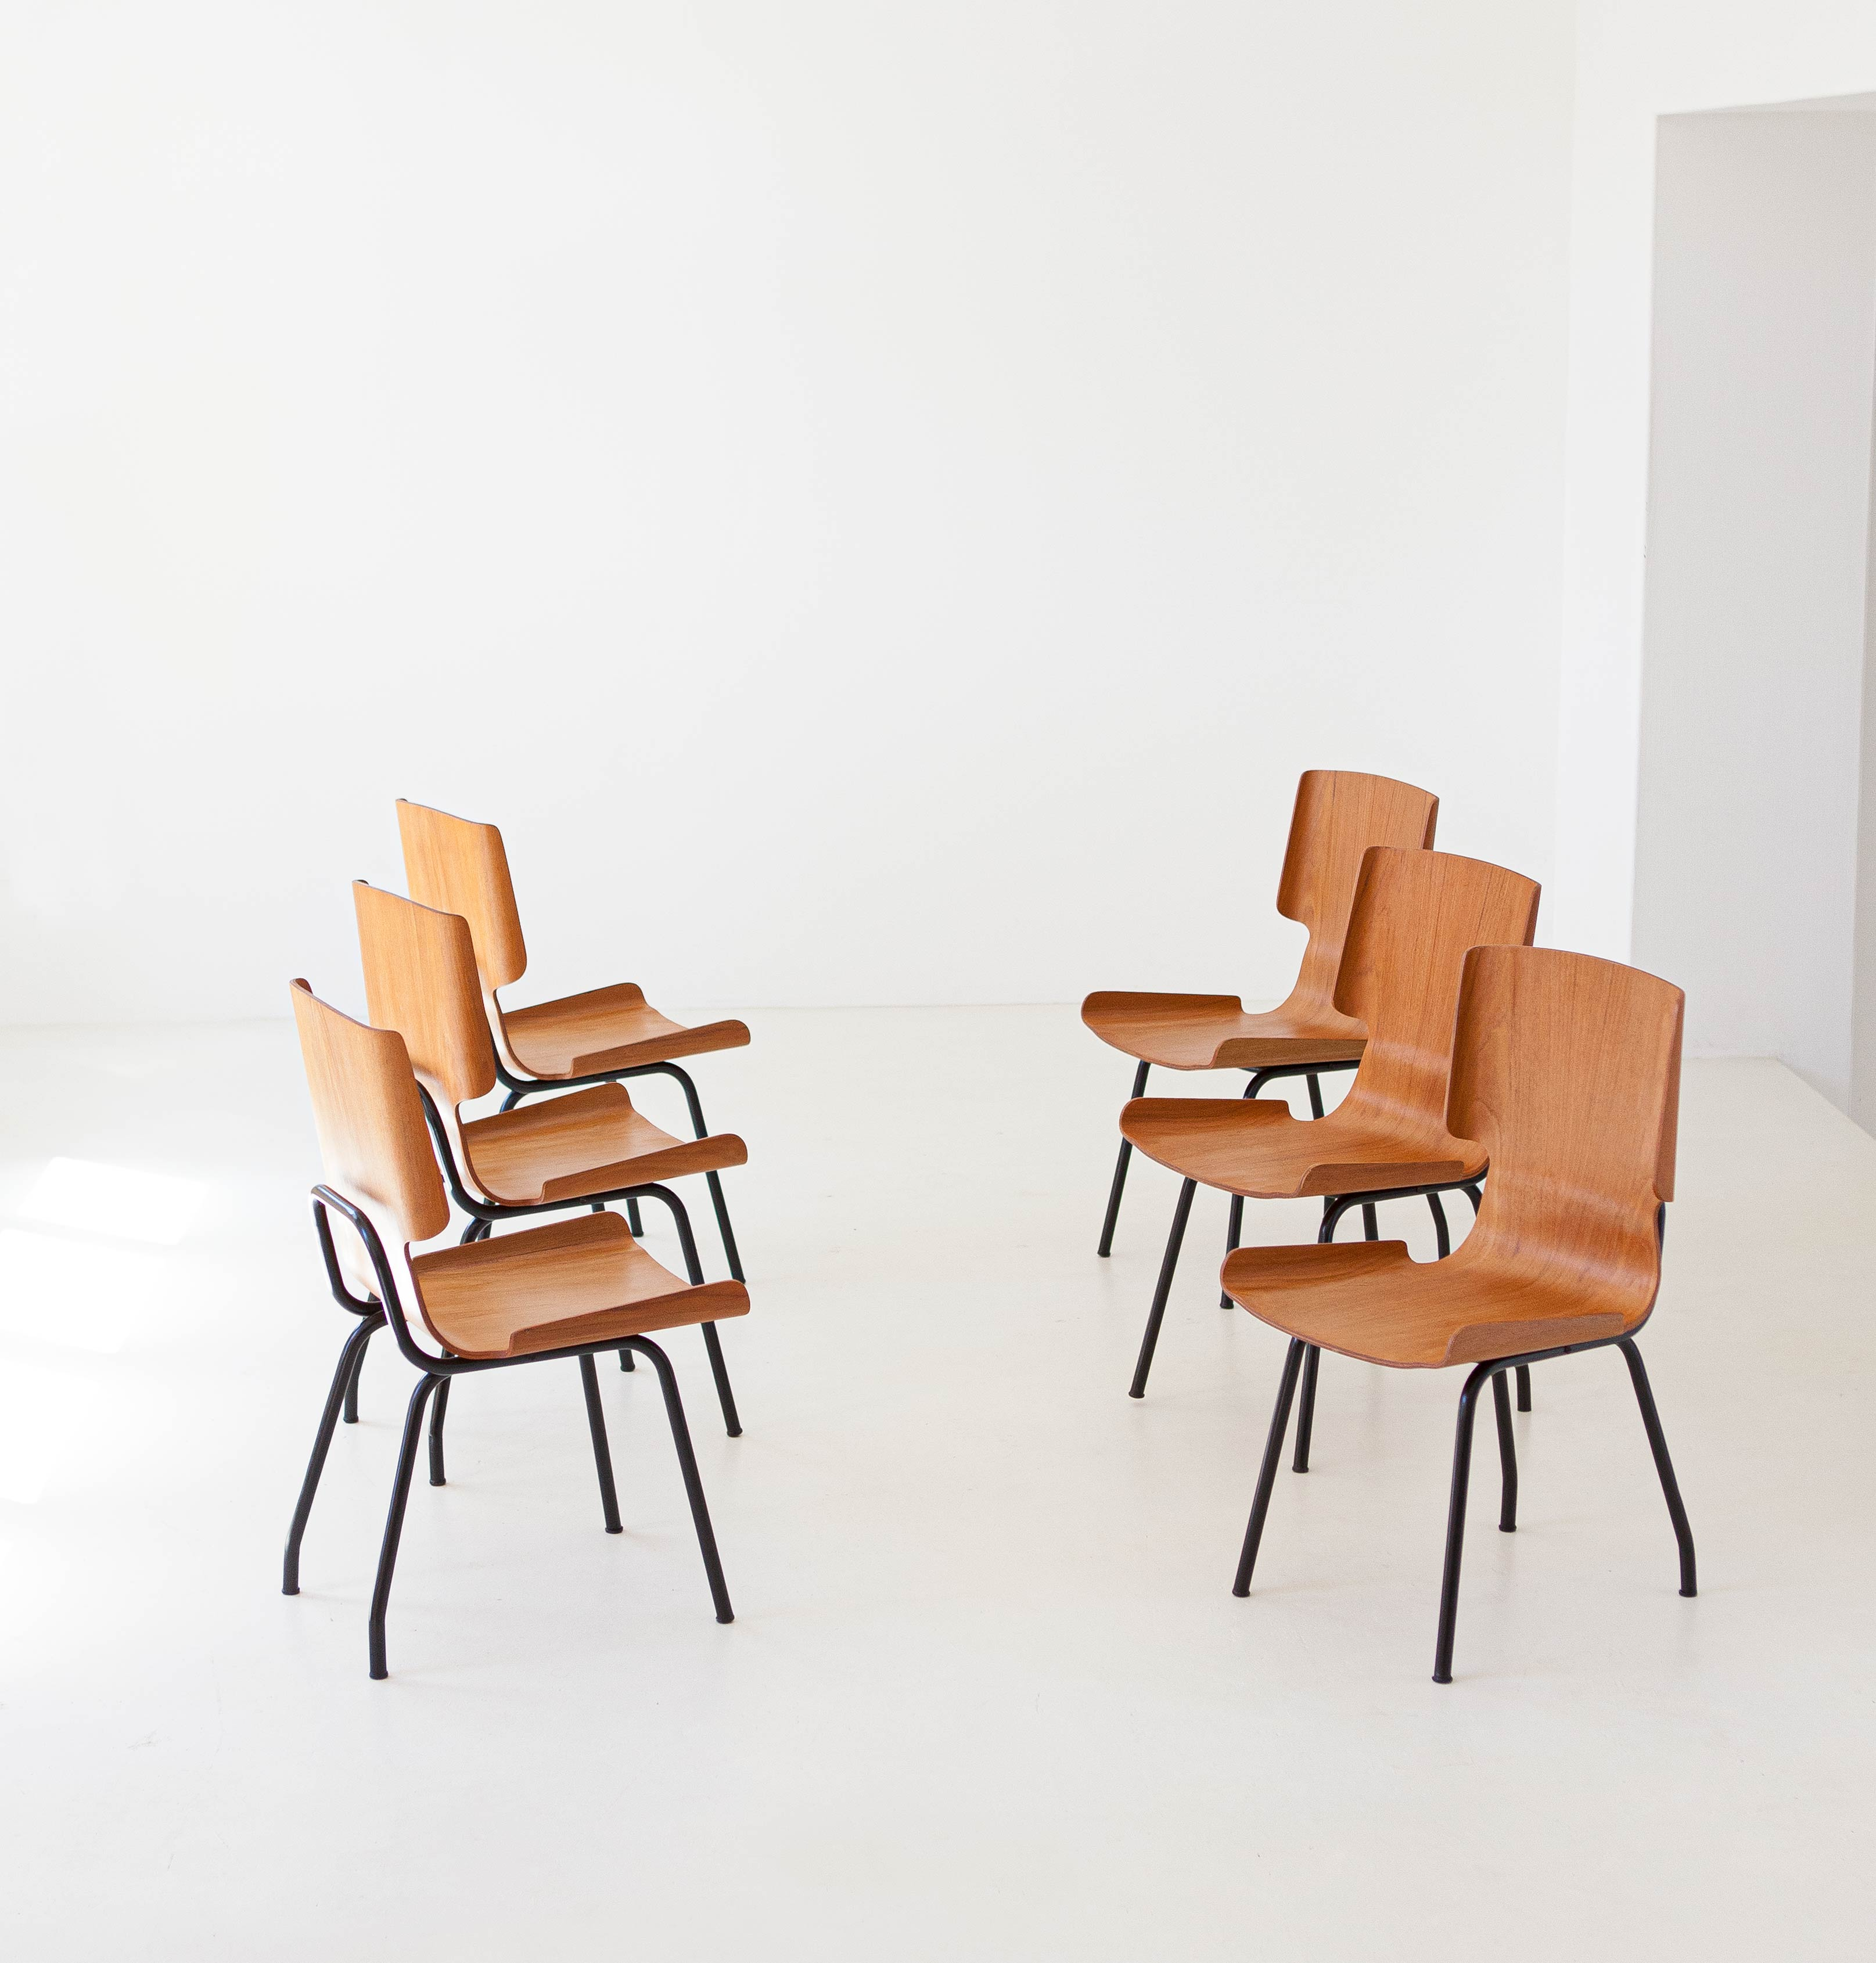 1950s-set-of-six-curved-teak-chairs-by-carlo-ratti-8-se311